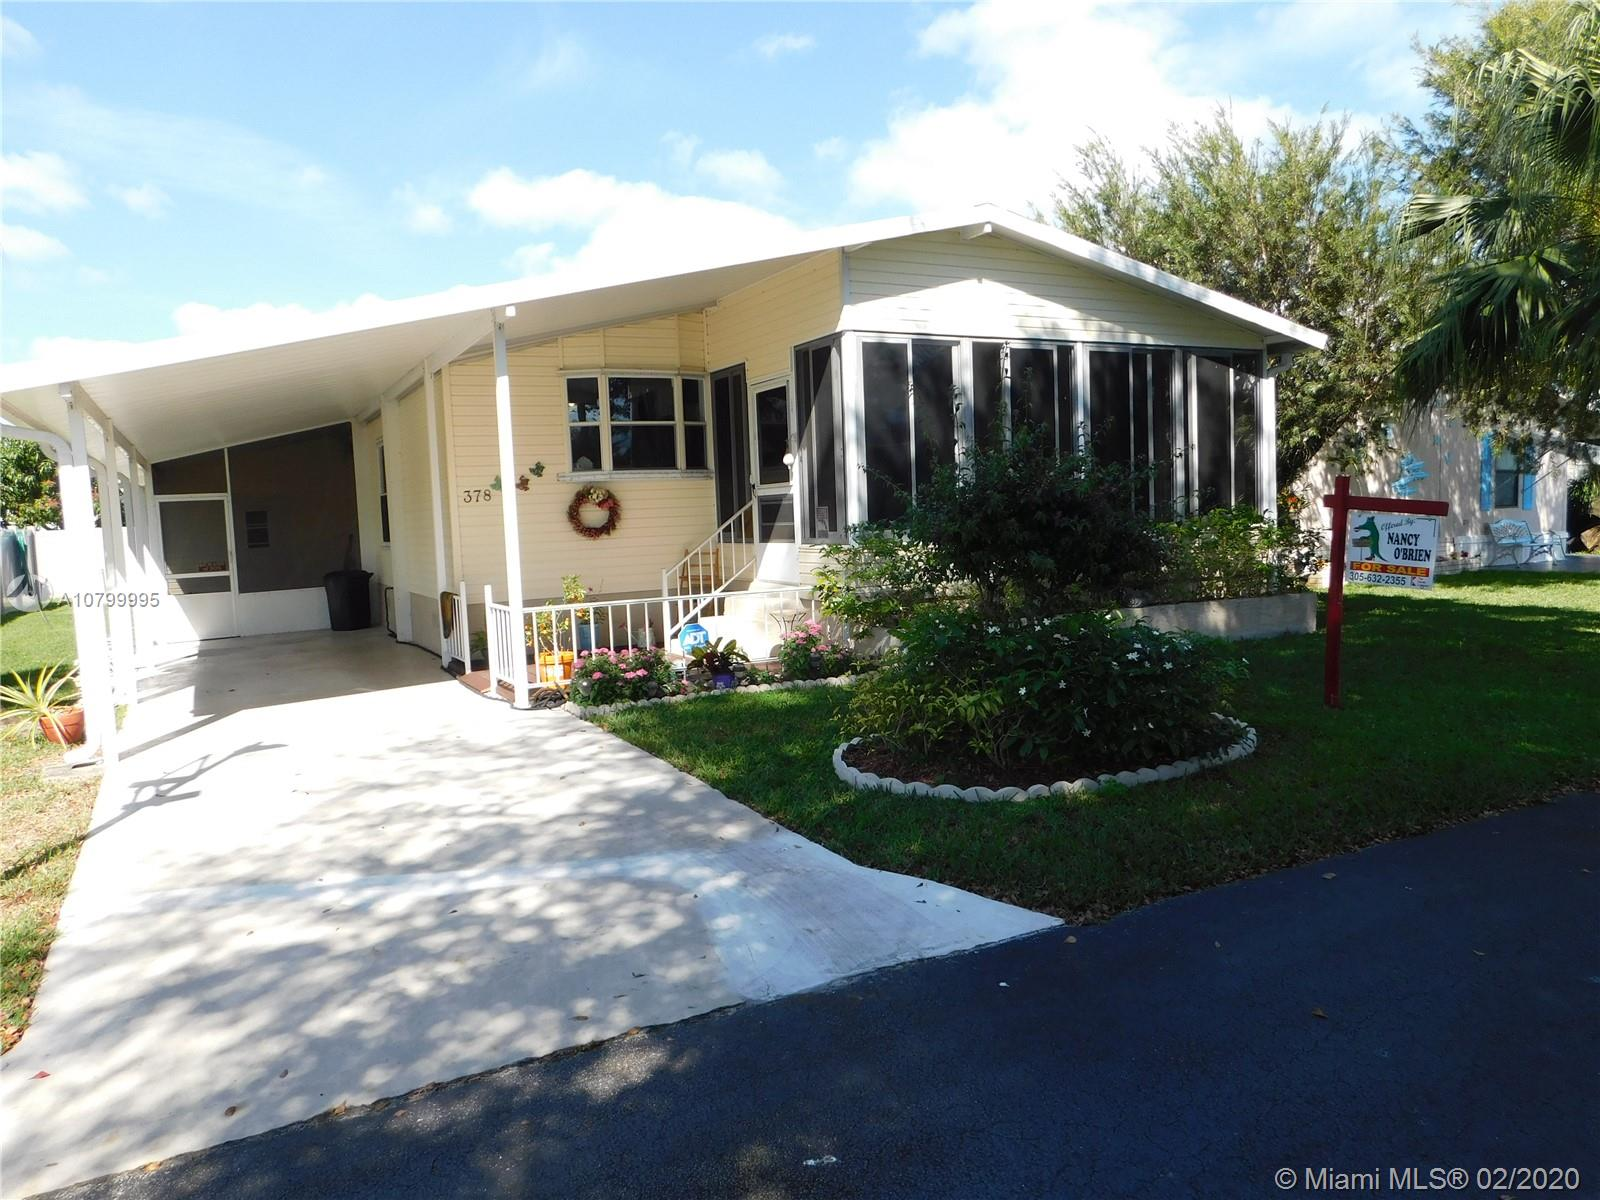 35303 SW 180th Ave #378, Homestead, FL 33034 - Homestead, FL real estate listing